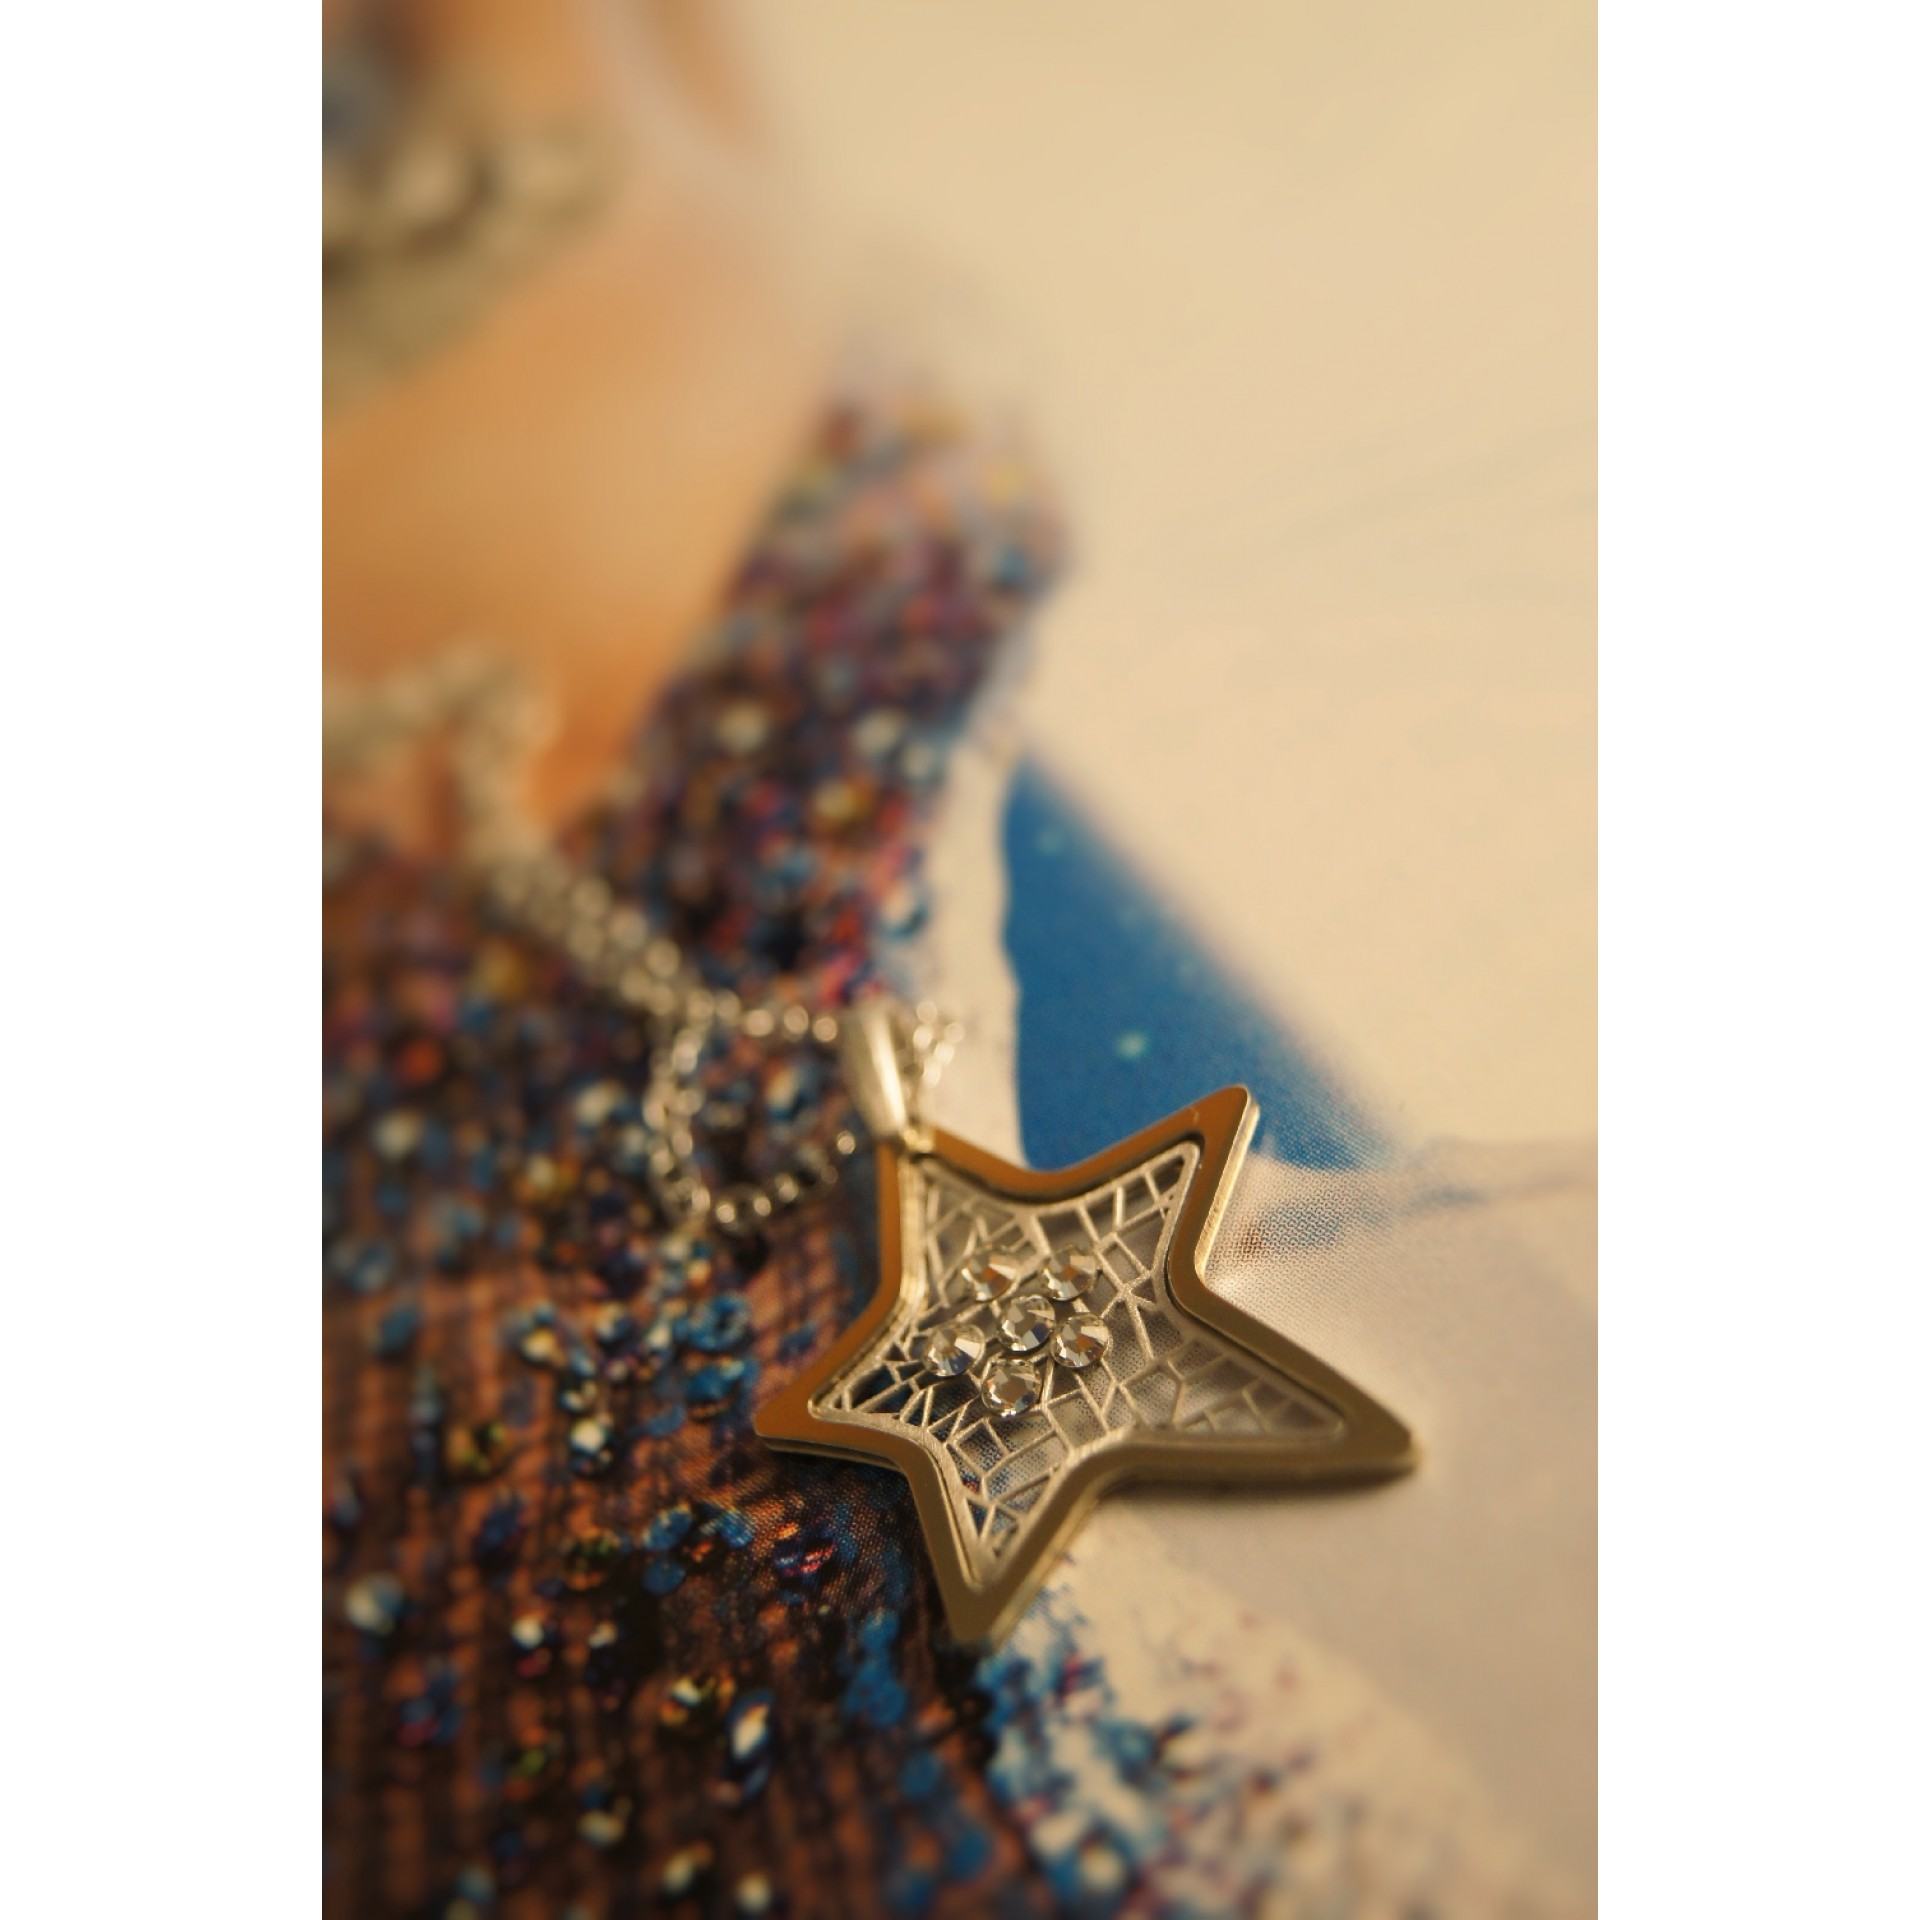 The Star-Addiction in Gold silver necklace